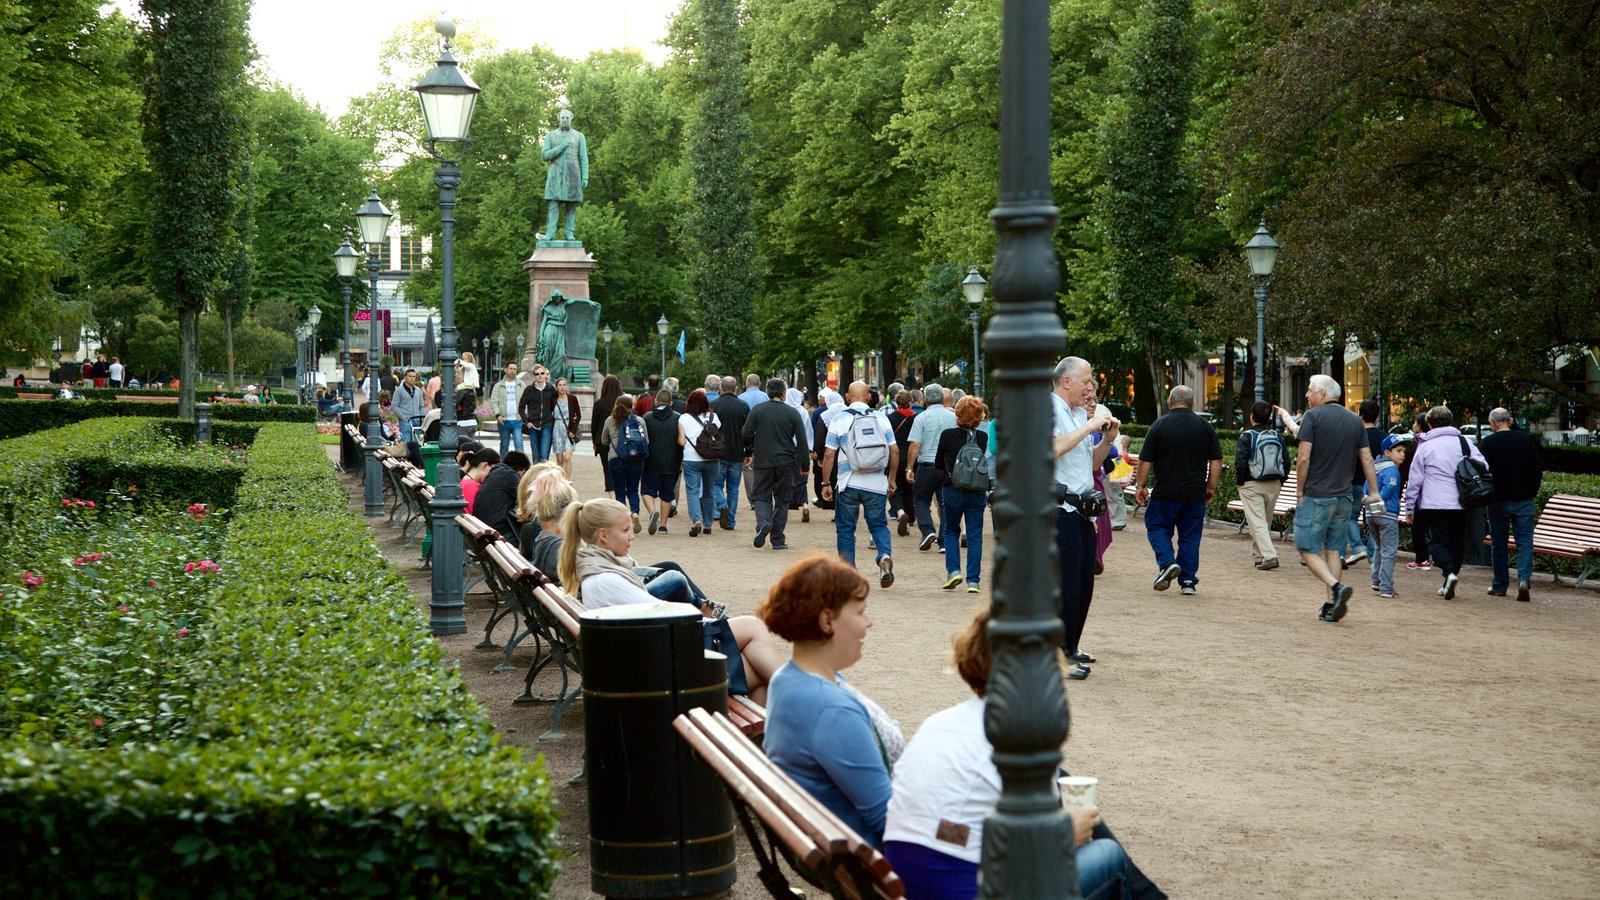 Esplanadi which includes a park and street scenes as well as a large group of people